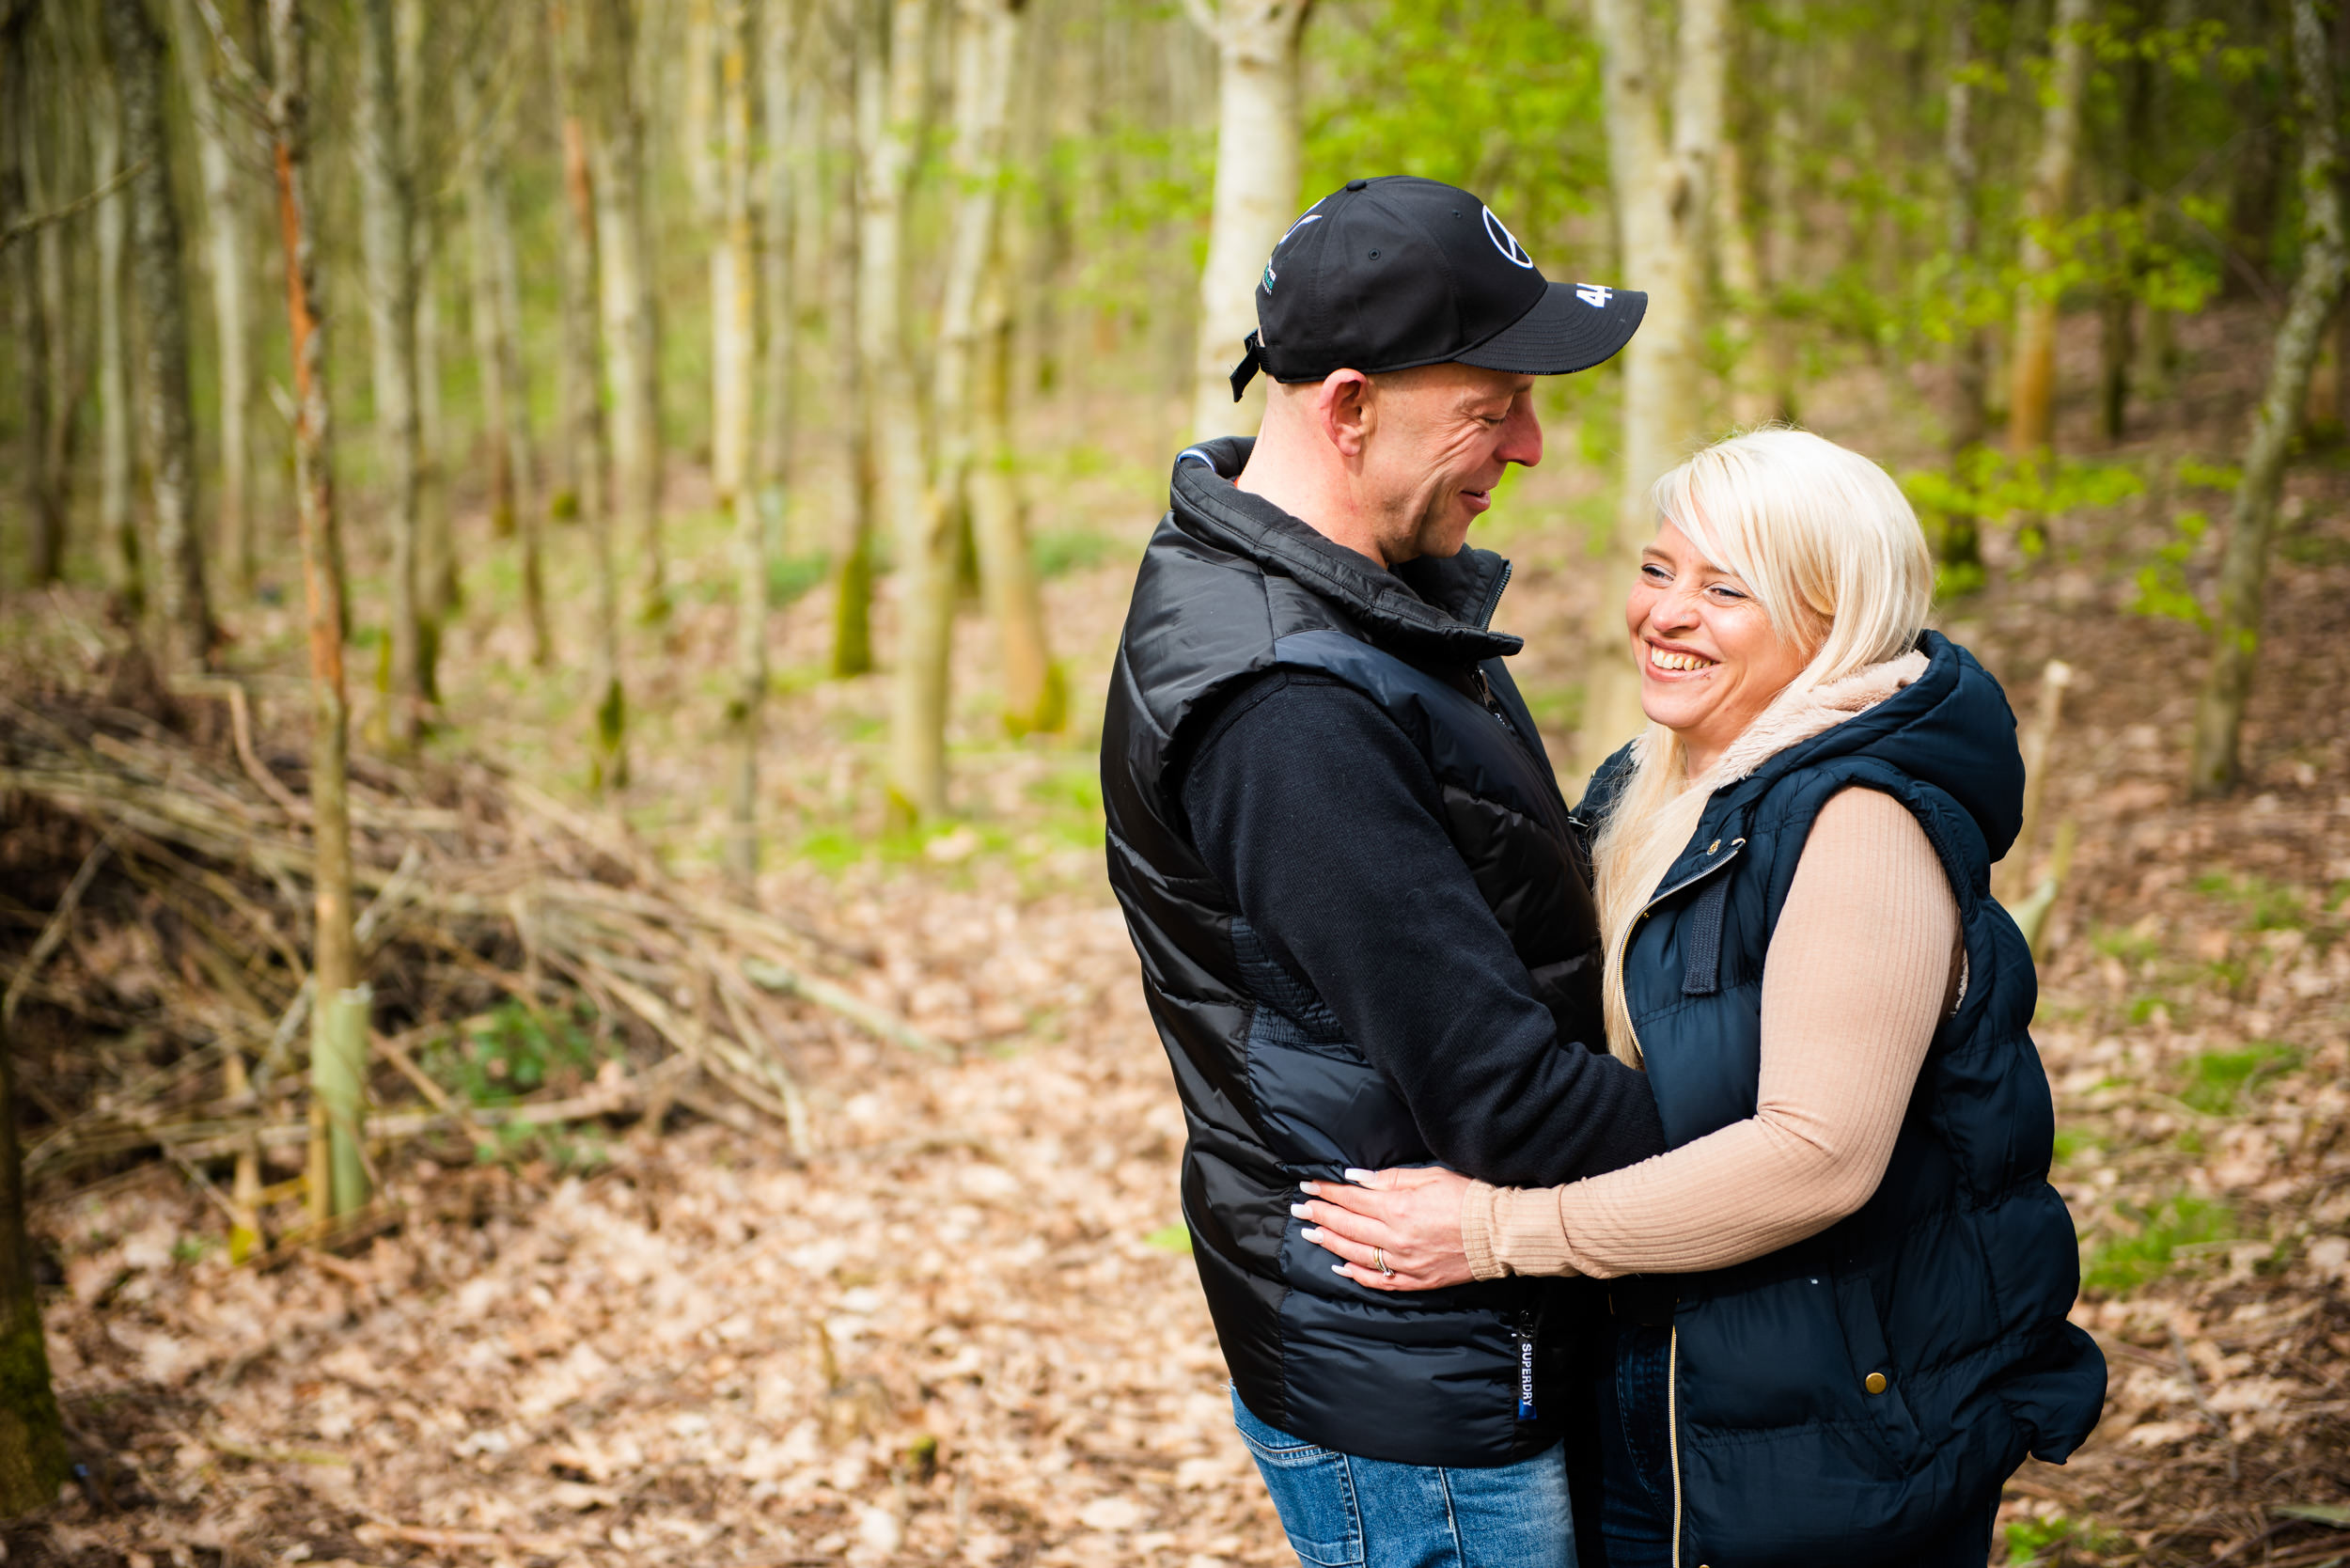 Engaged couple in a wooded glade laughing at each other